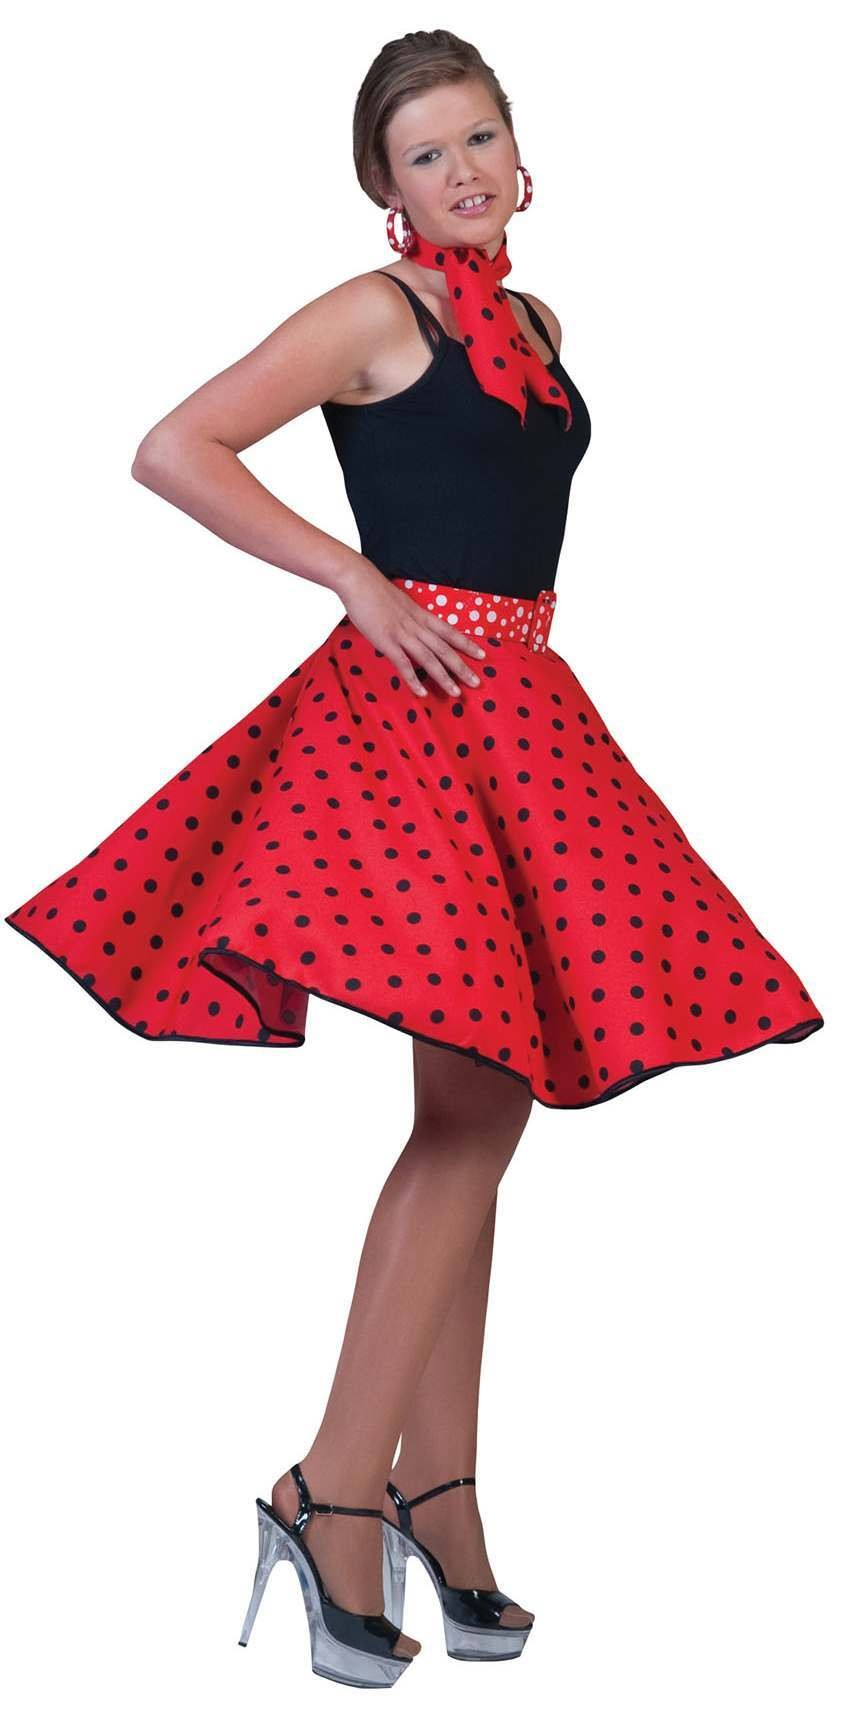 Ladies Red & Black Dot 50'S Style Rock 'N' Roll Dress Fancy Dress Costume.